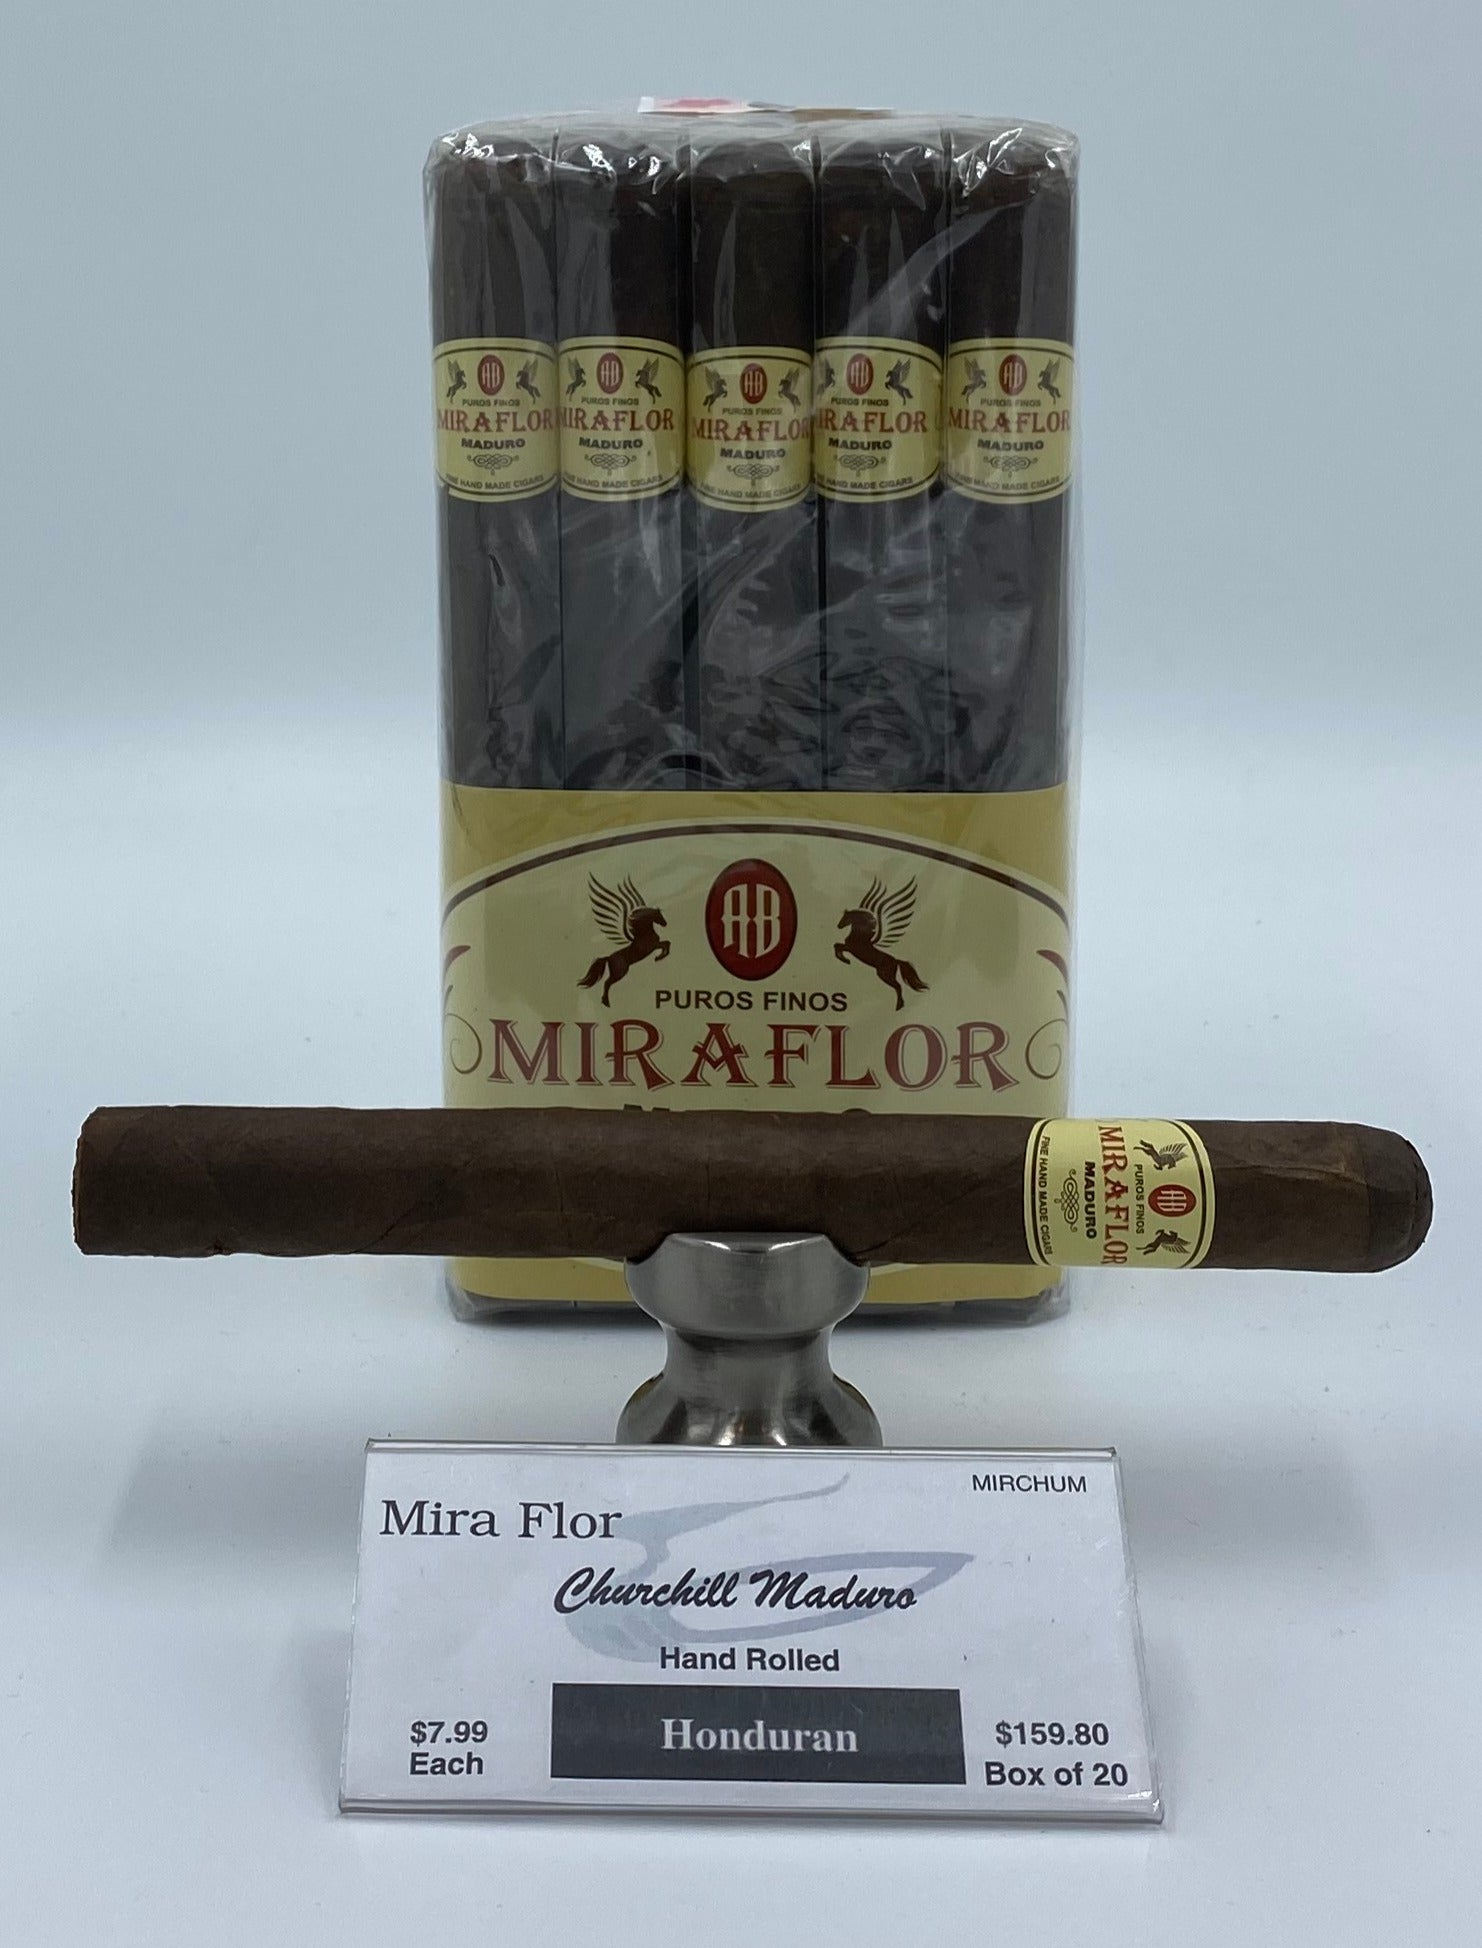 A Bundle of 20 Alec Bradley Mira Flor Churchill Maduro. Pay ONLY $7.19 per Cigar. Sorry NOT eligible for FREE mail order shipping,Free Local Home Delivery available.